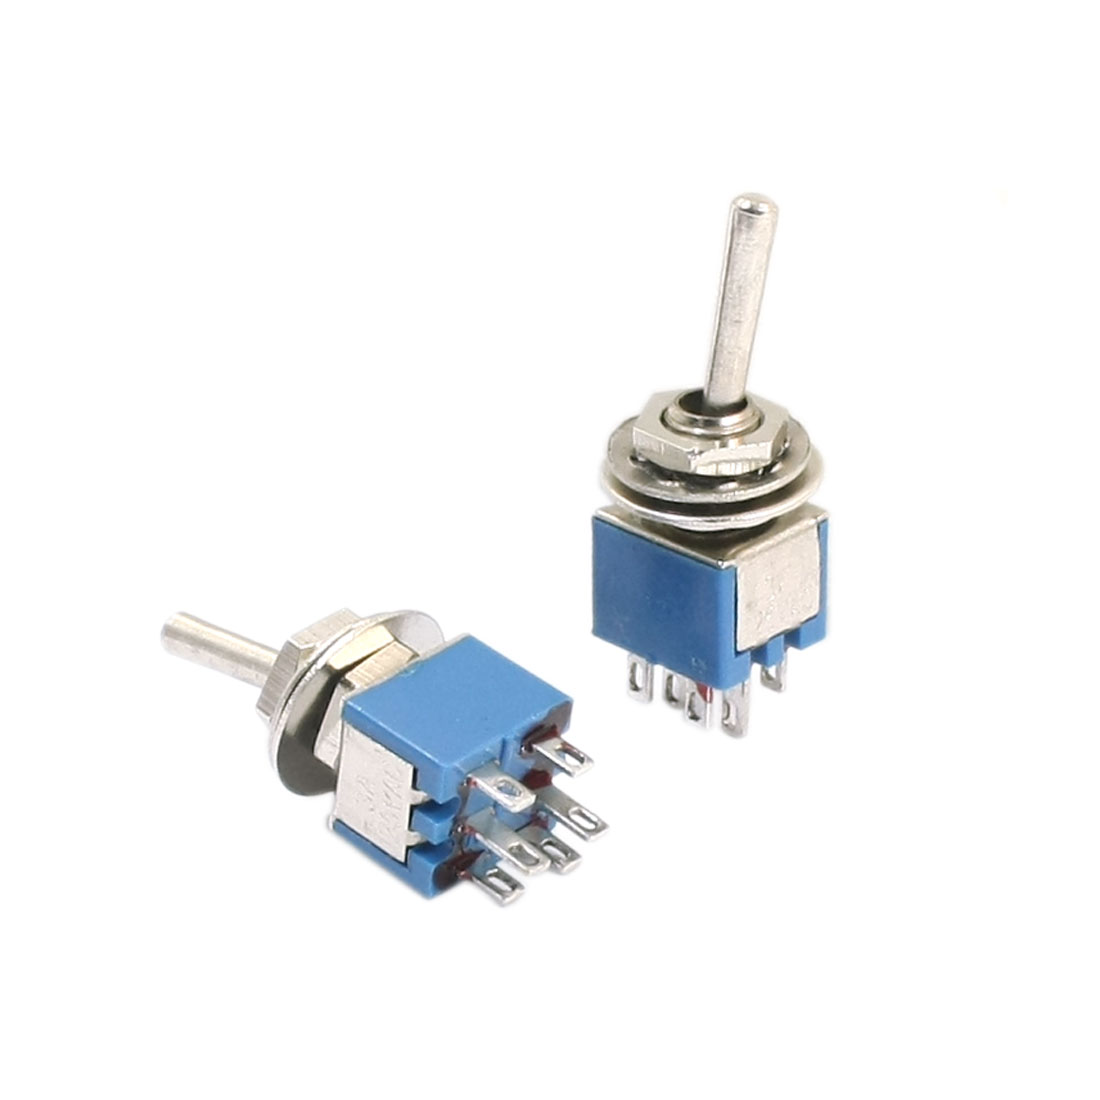 2PCS 6mm Panel Cutout Dia DPDT ON/ON Locking Toggle Switch AC 125V 3A